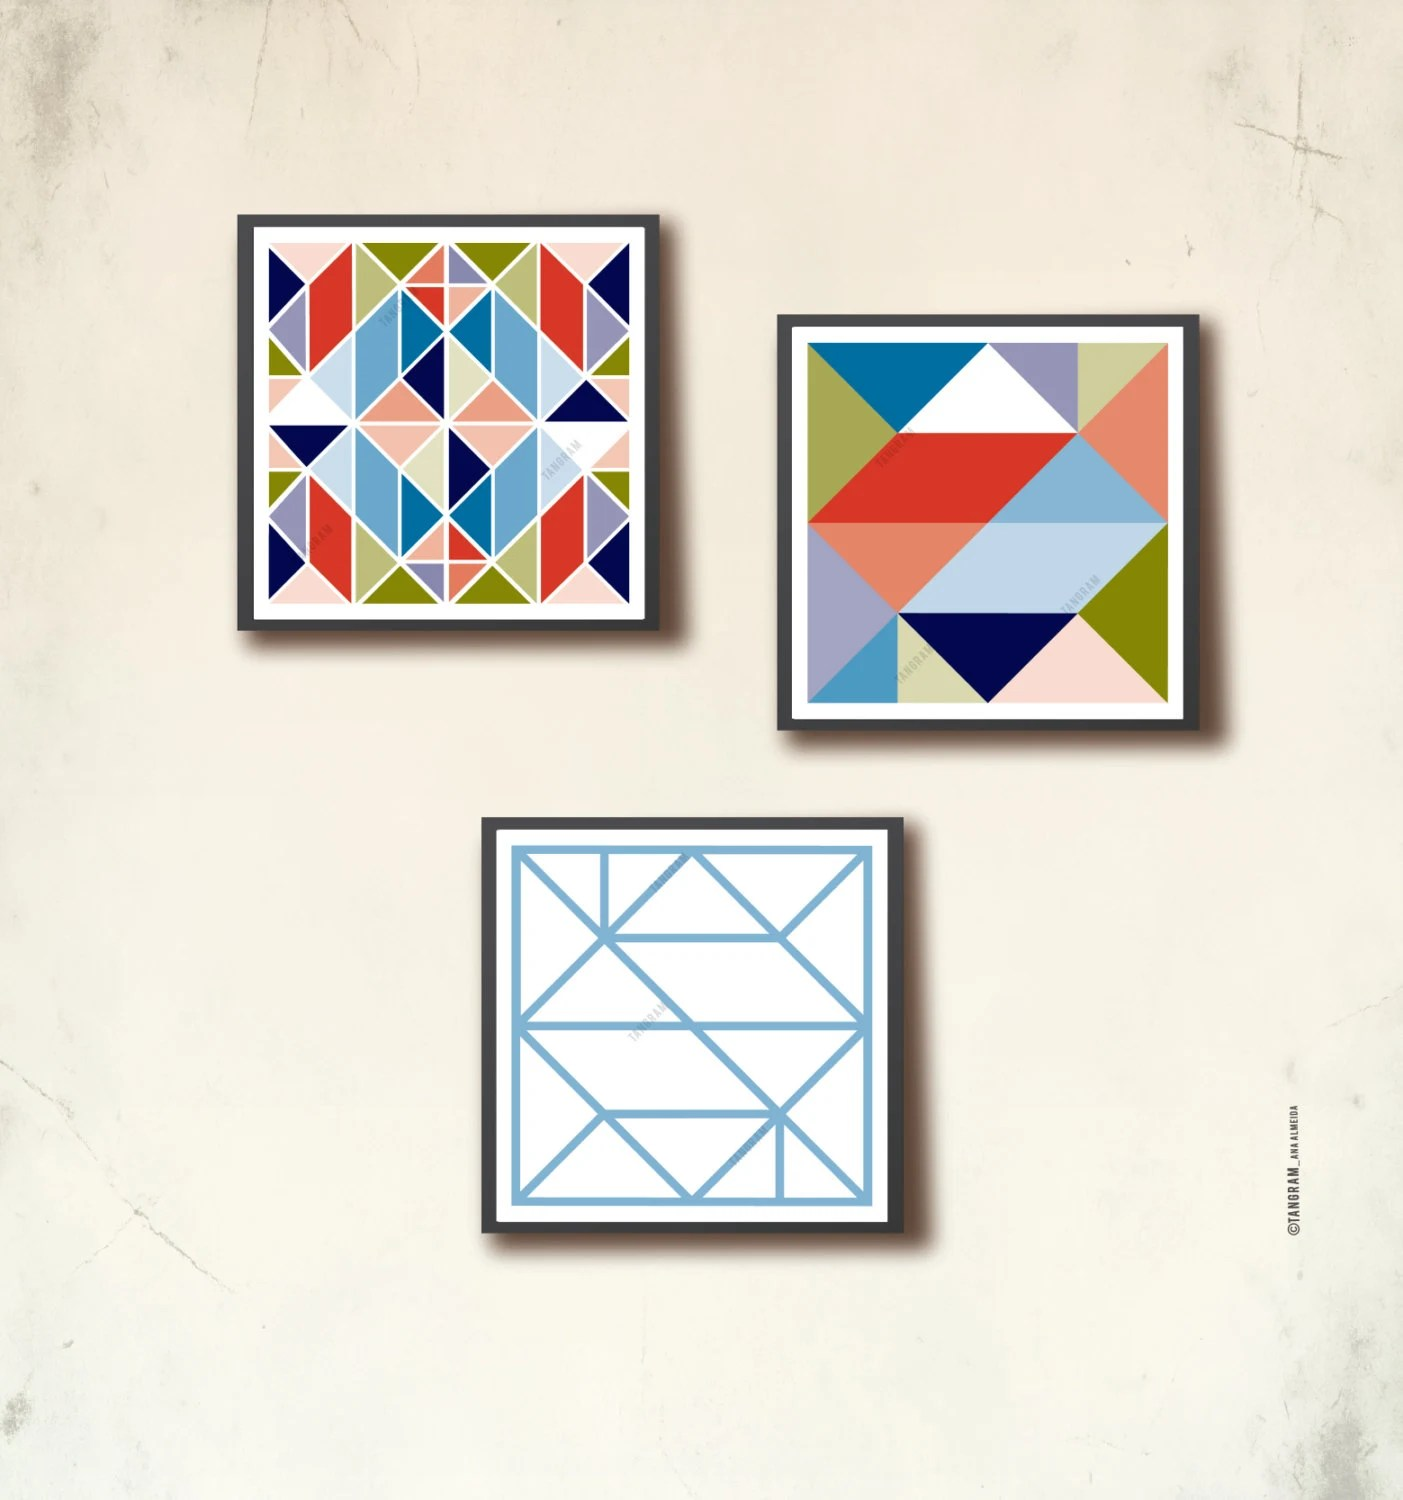 Affiches Scandinaves Square Scandinavian Mini Posters Set 3 Mini Geometric Art Prints 4 X 4in Affiche Scandinave Tiny Wall Art Prints Tangramartworks